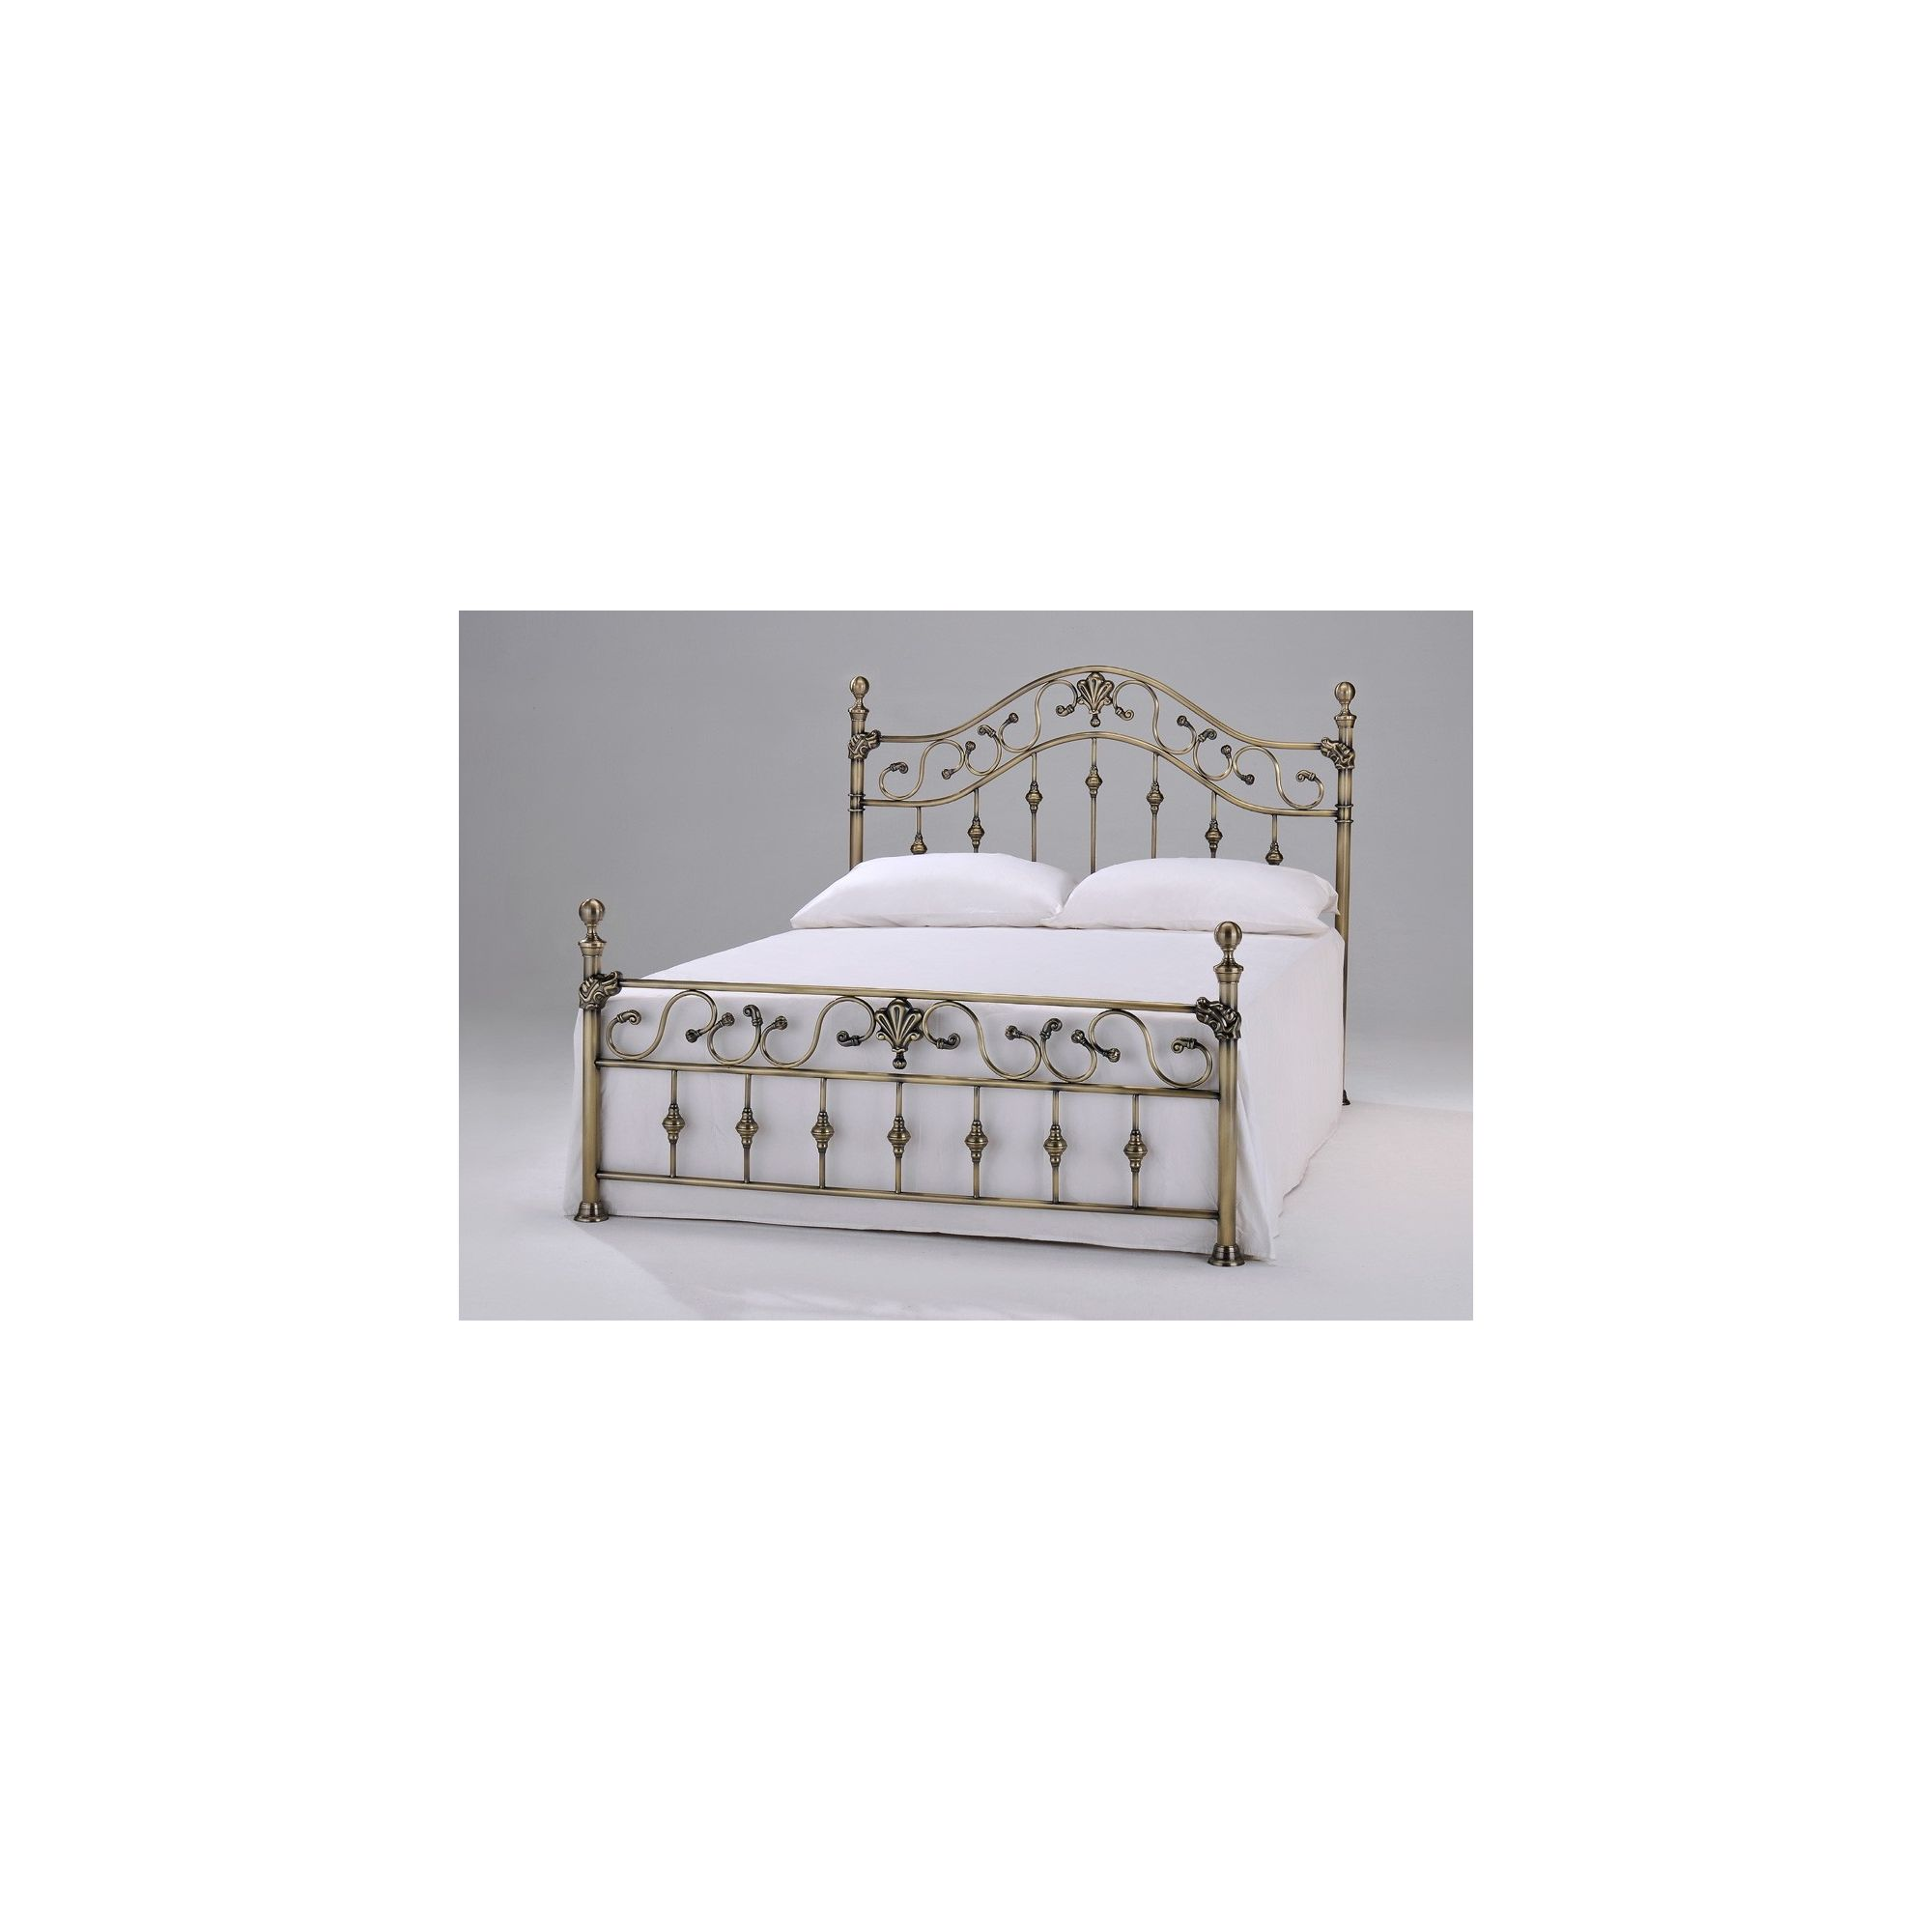 Interiors 2 suit Elizabeth Brass Bed - King - Brass at Tesco Direct